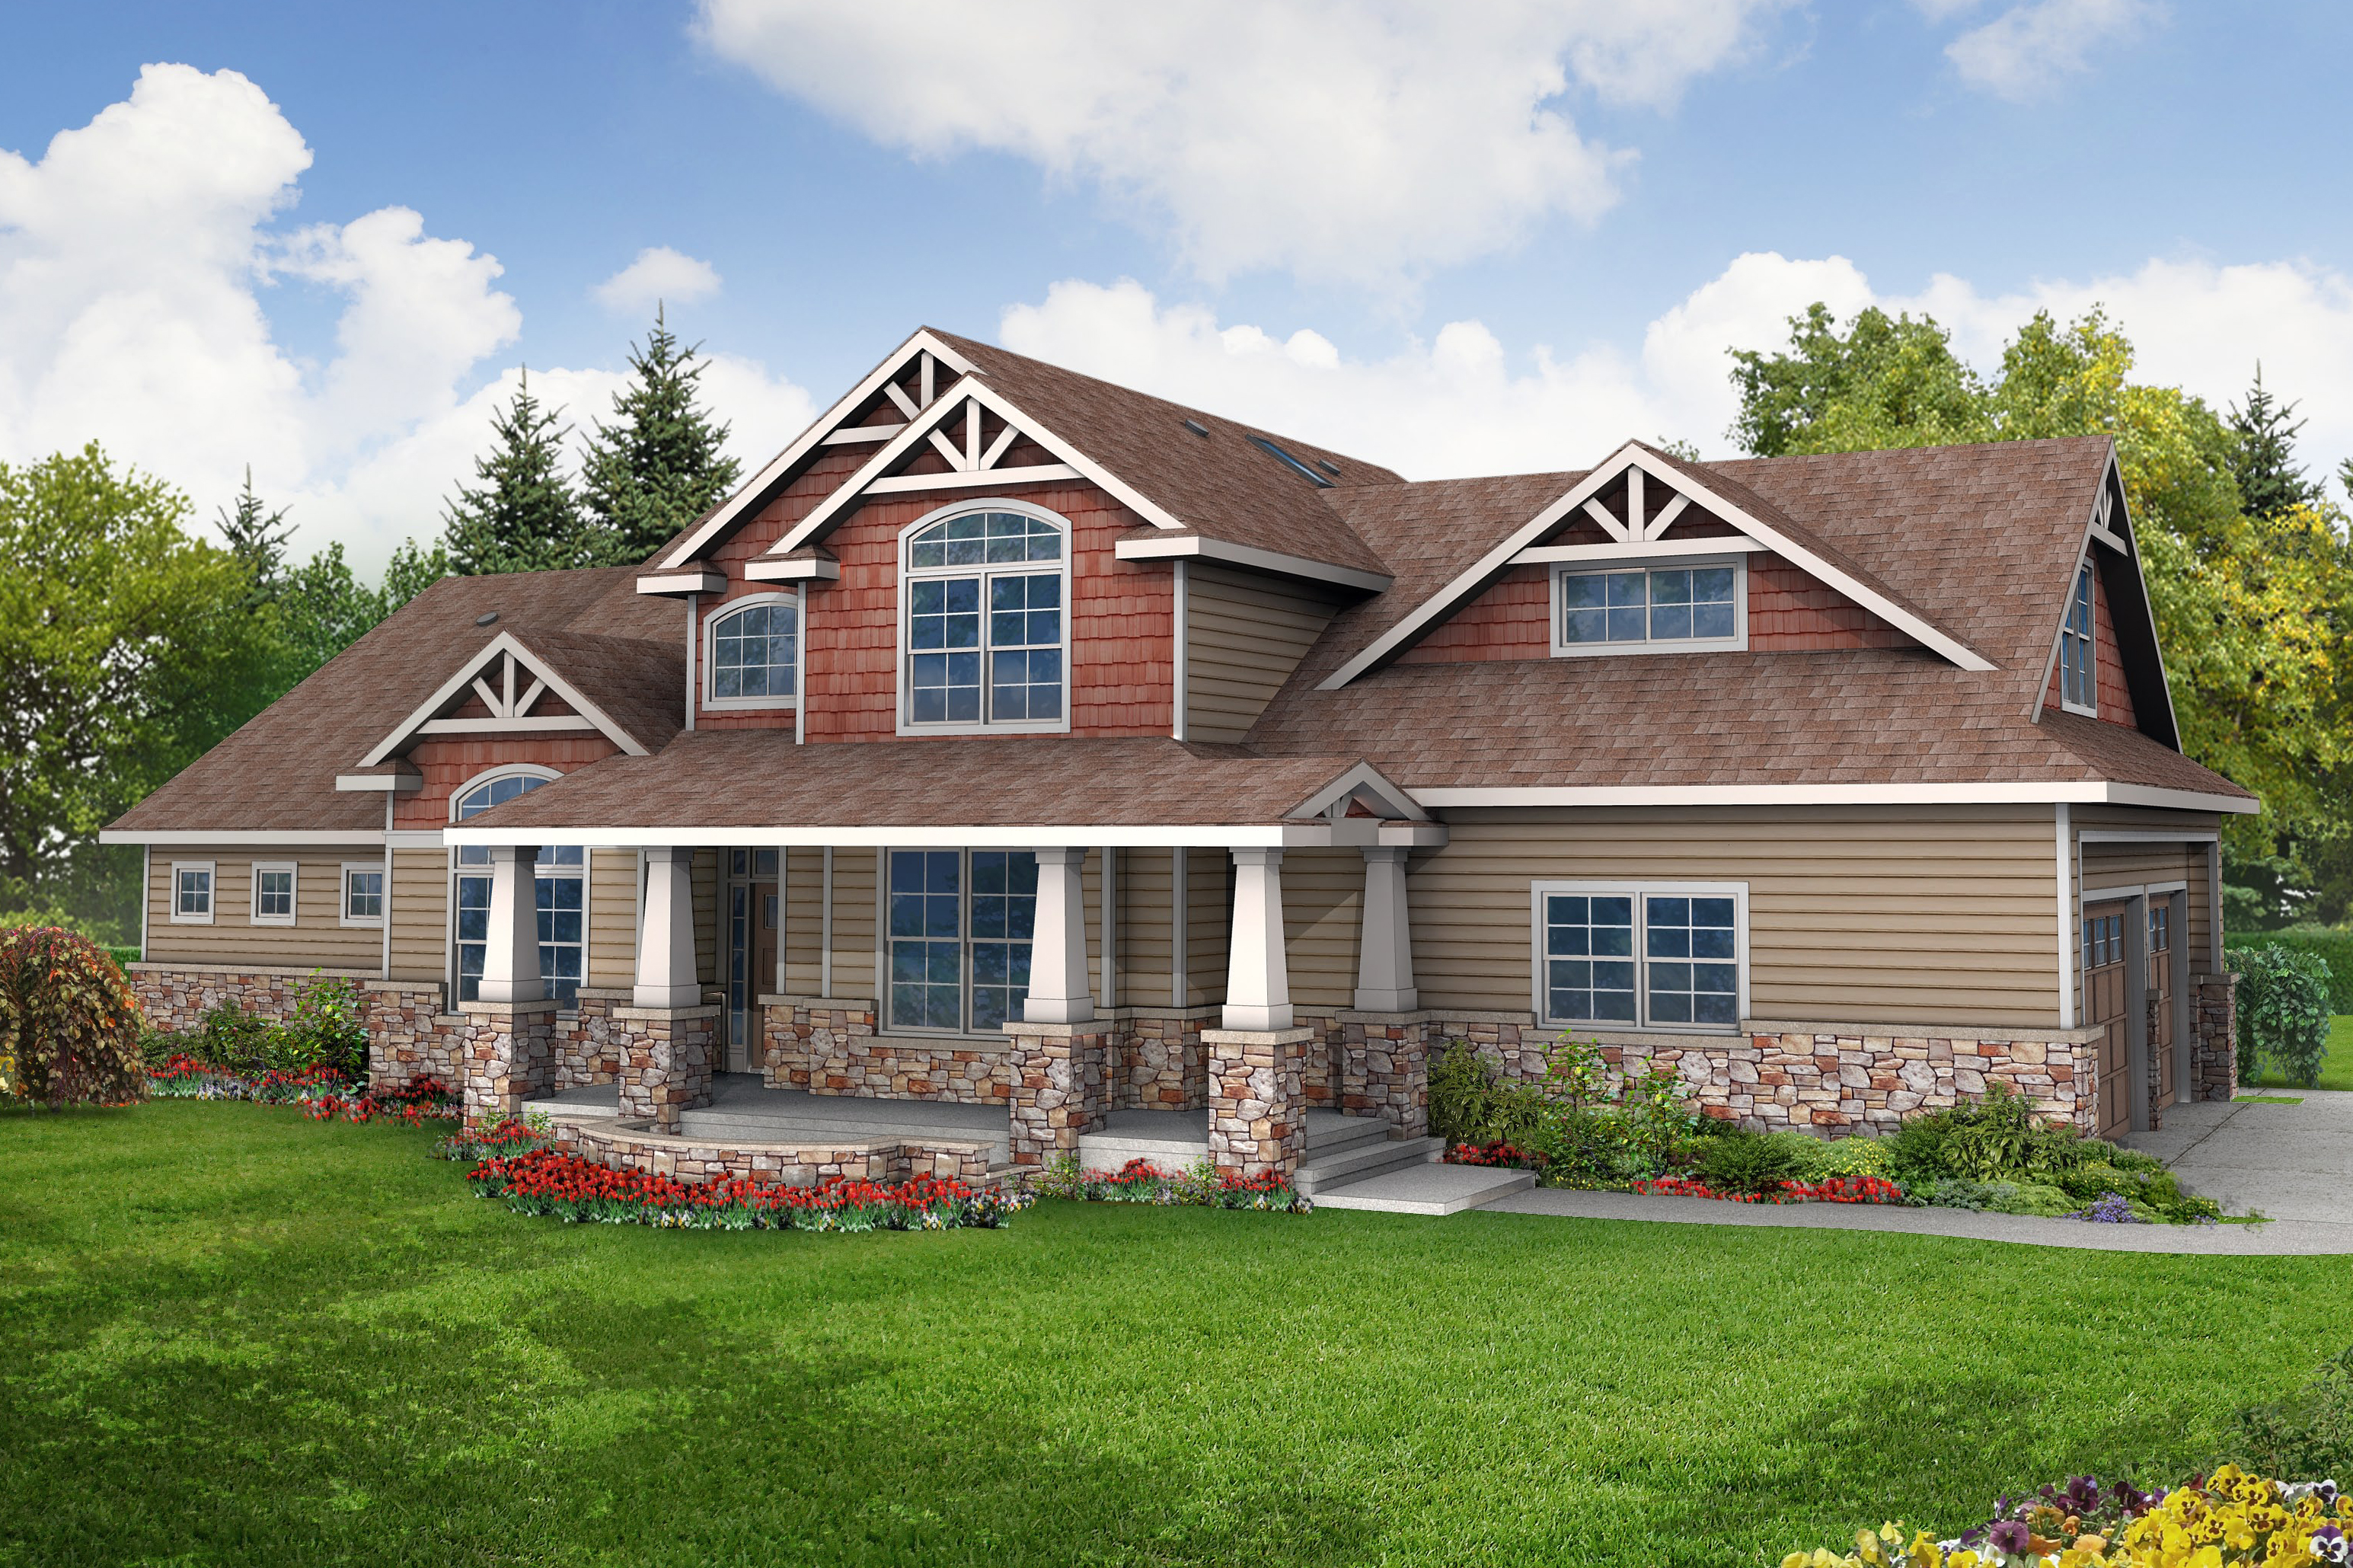 Craftsman house plans craftsman home plans craftsman for Hous plans